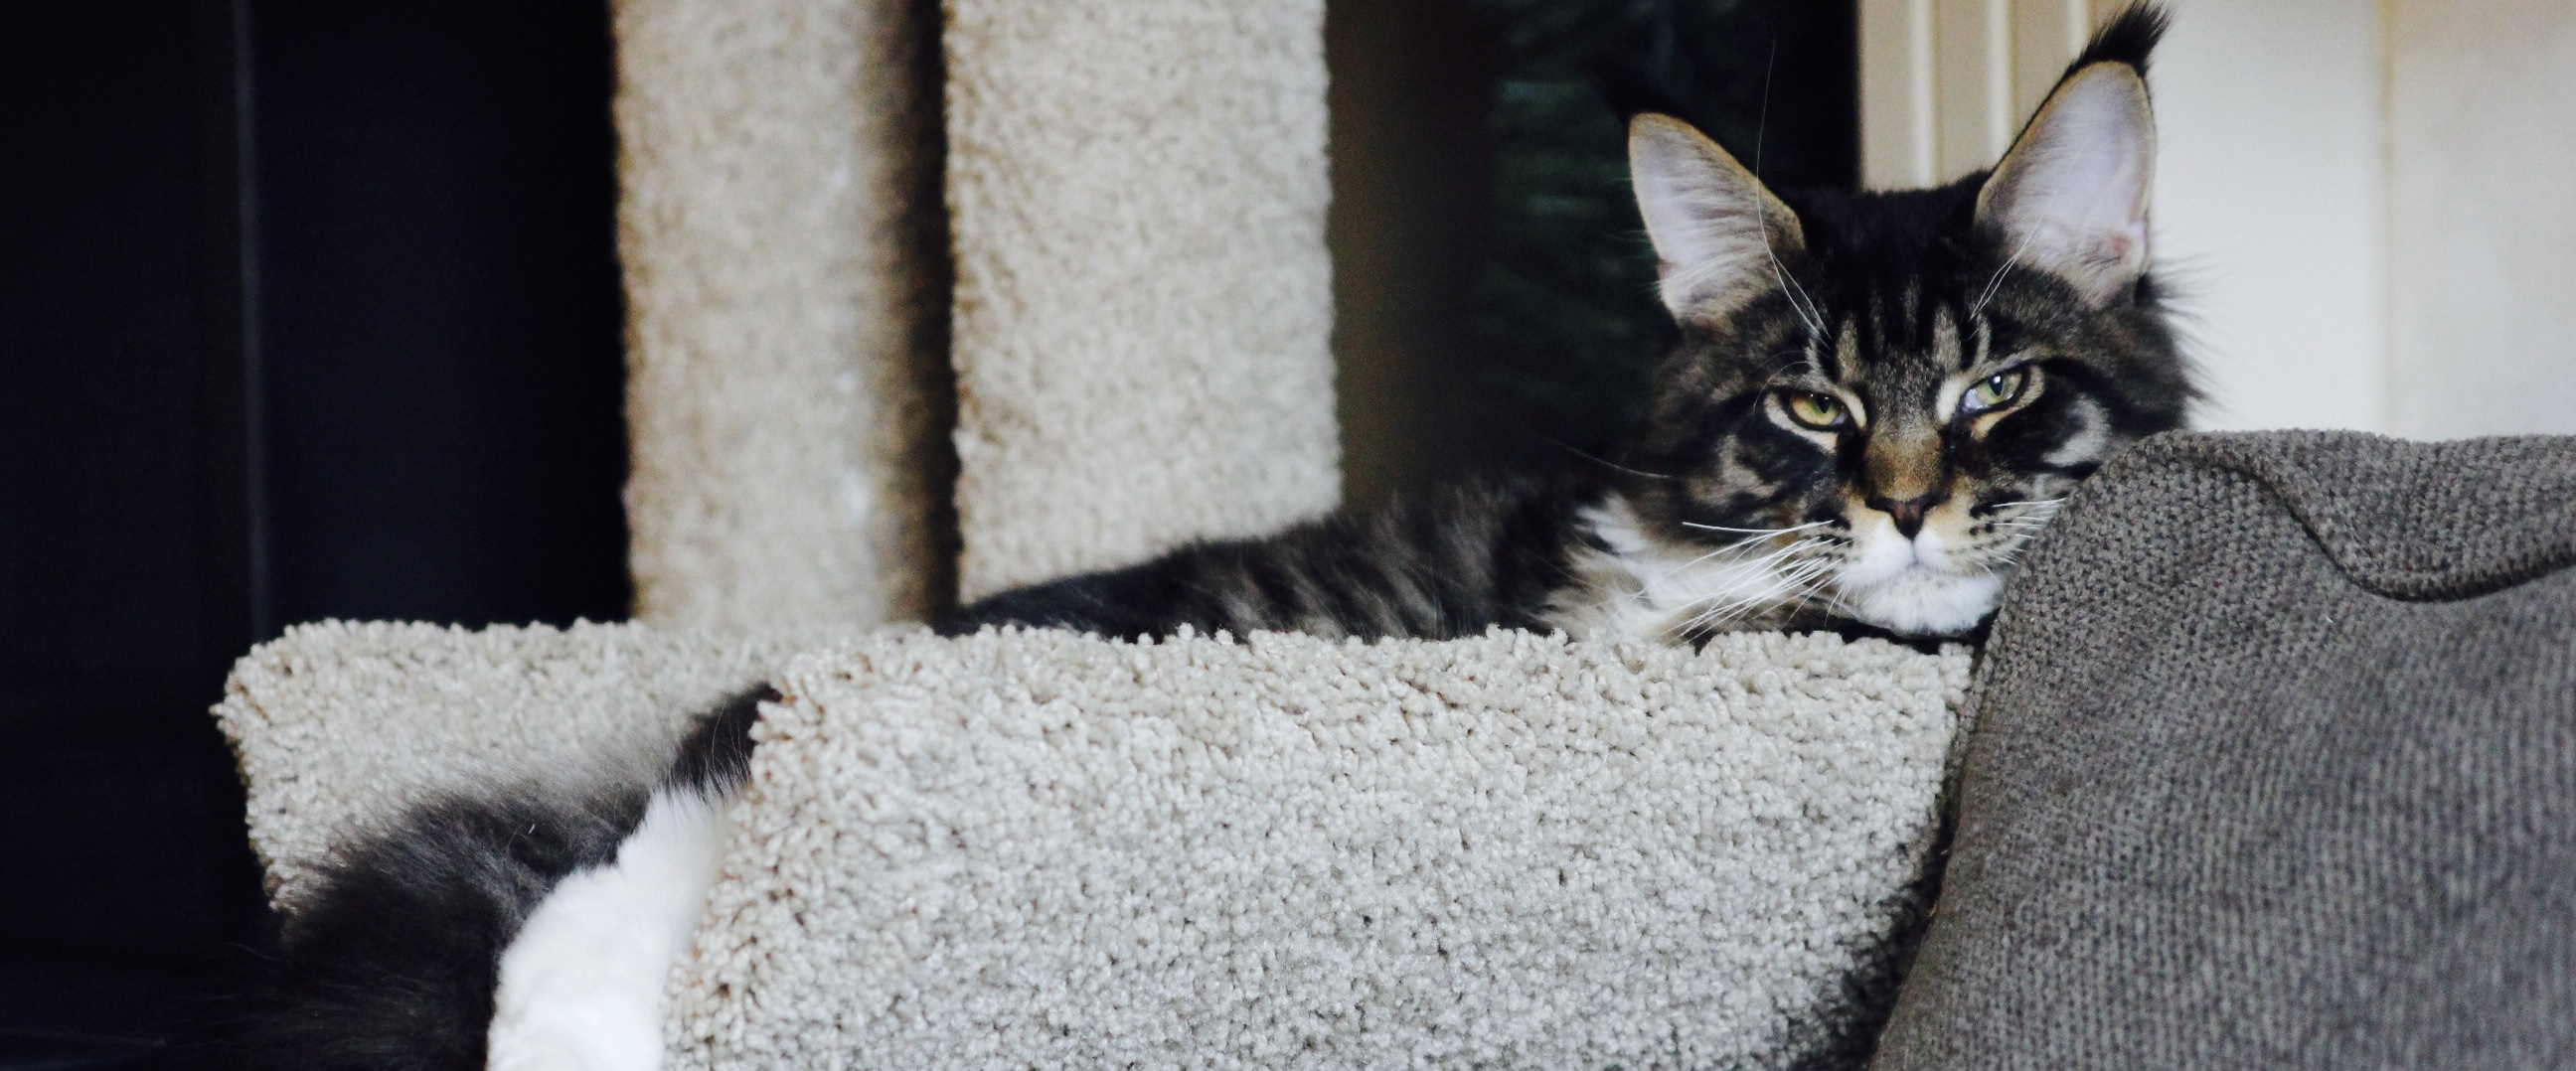 Steele Cats Cattery – Fine Maine Coon Kittens